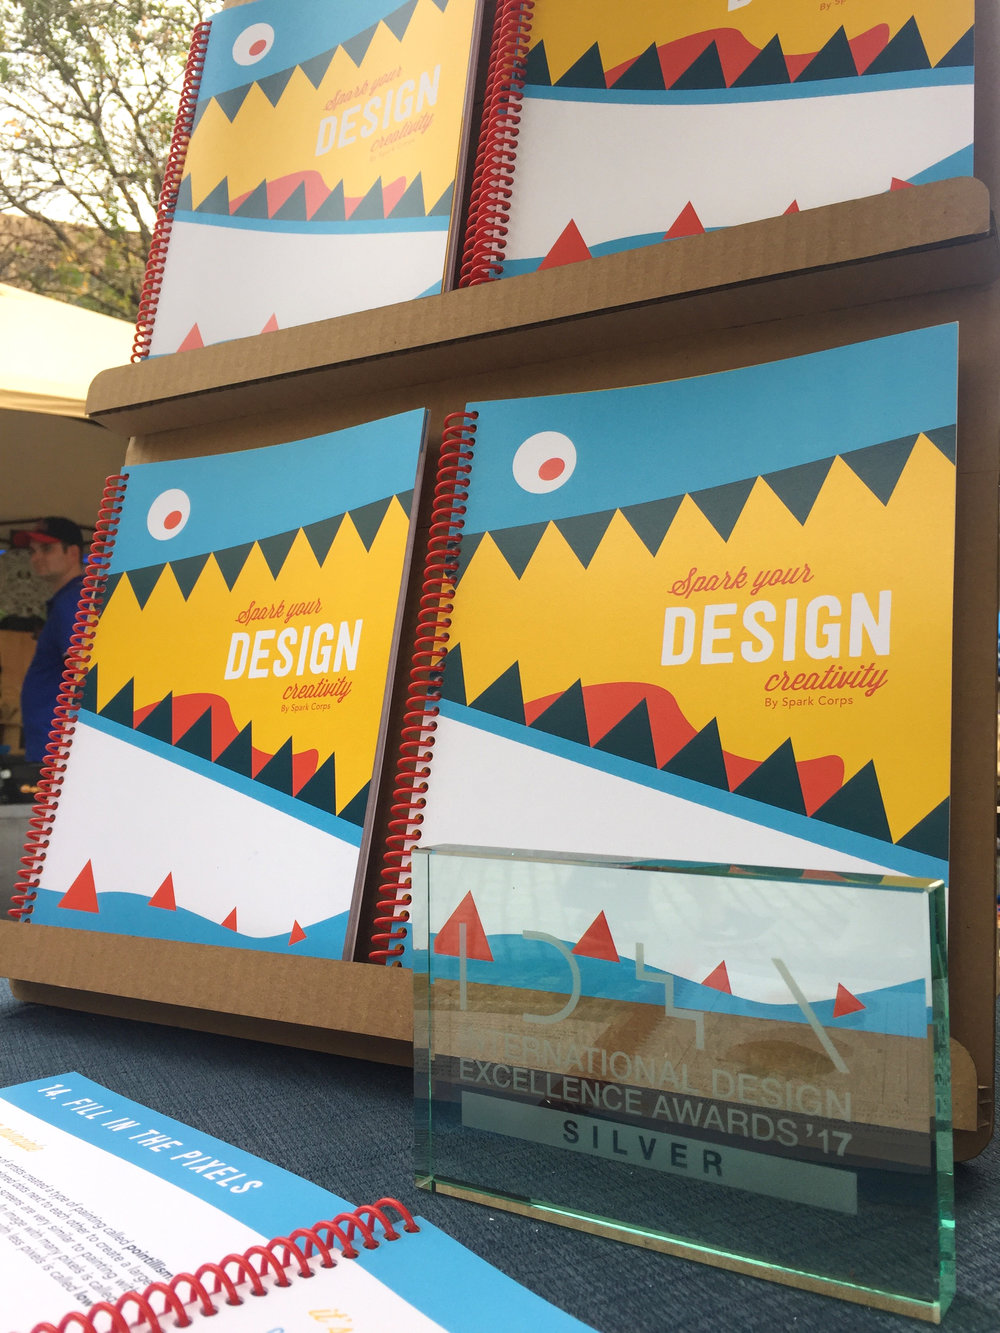 The Spark Your Design Creativity display featuring our silver  IDEA award